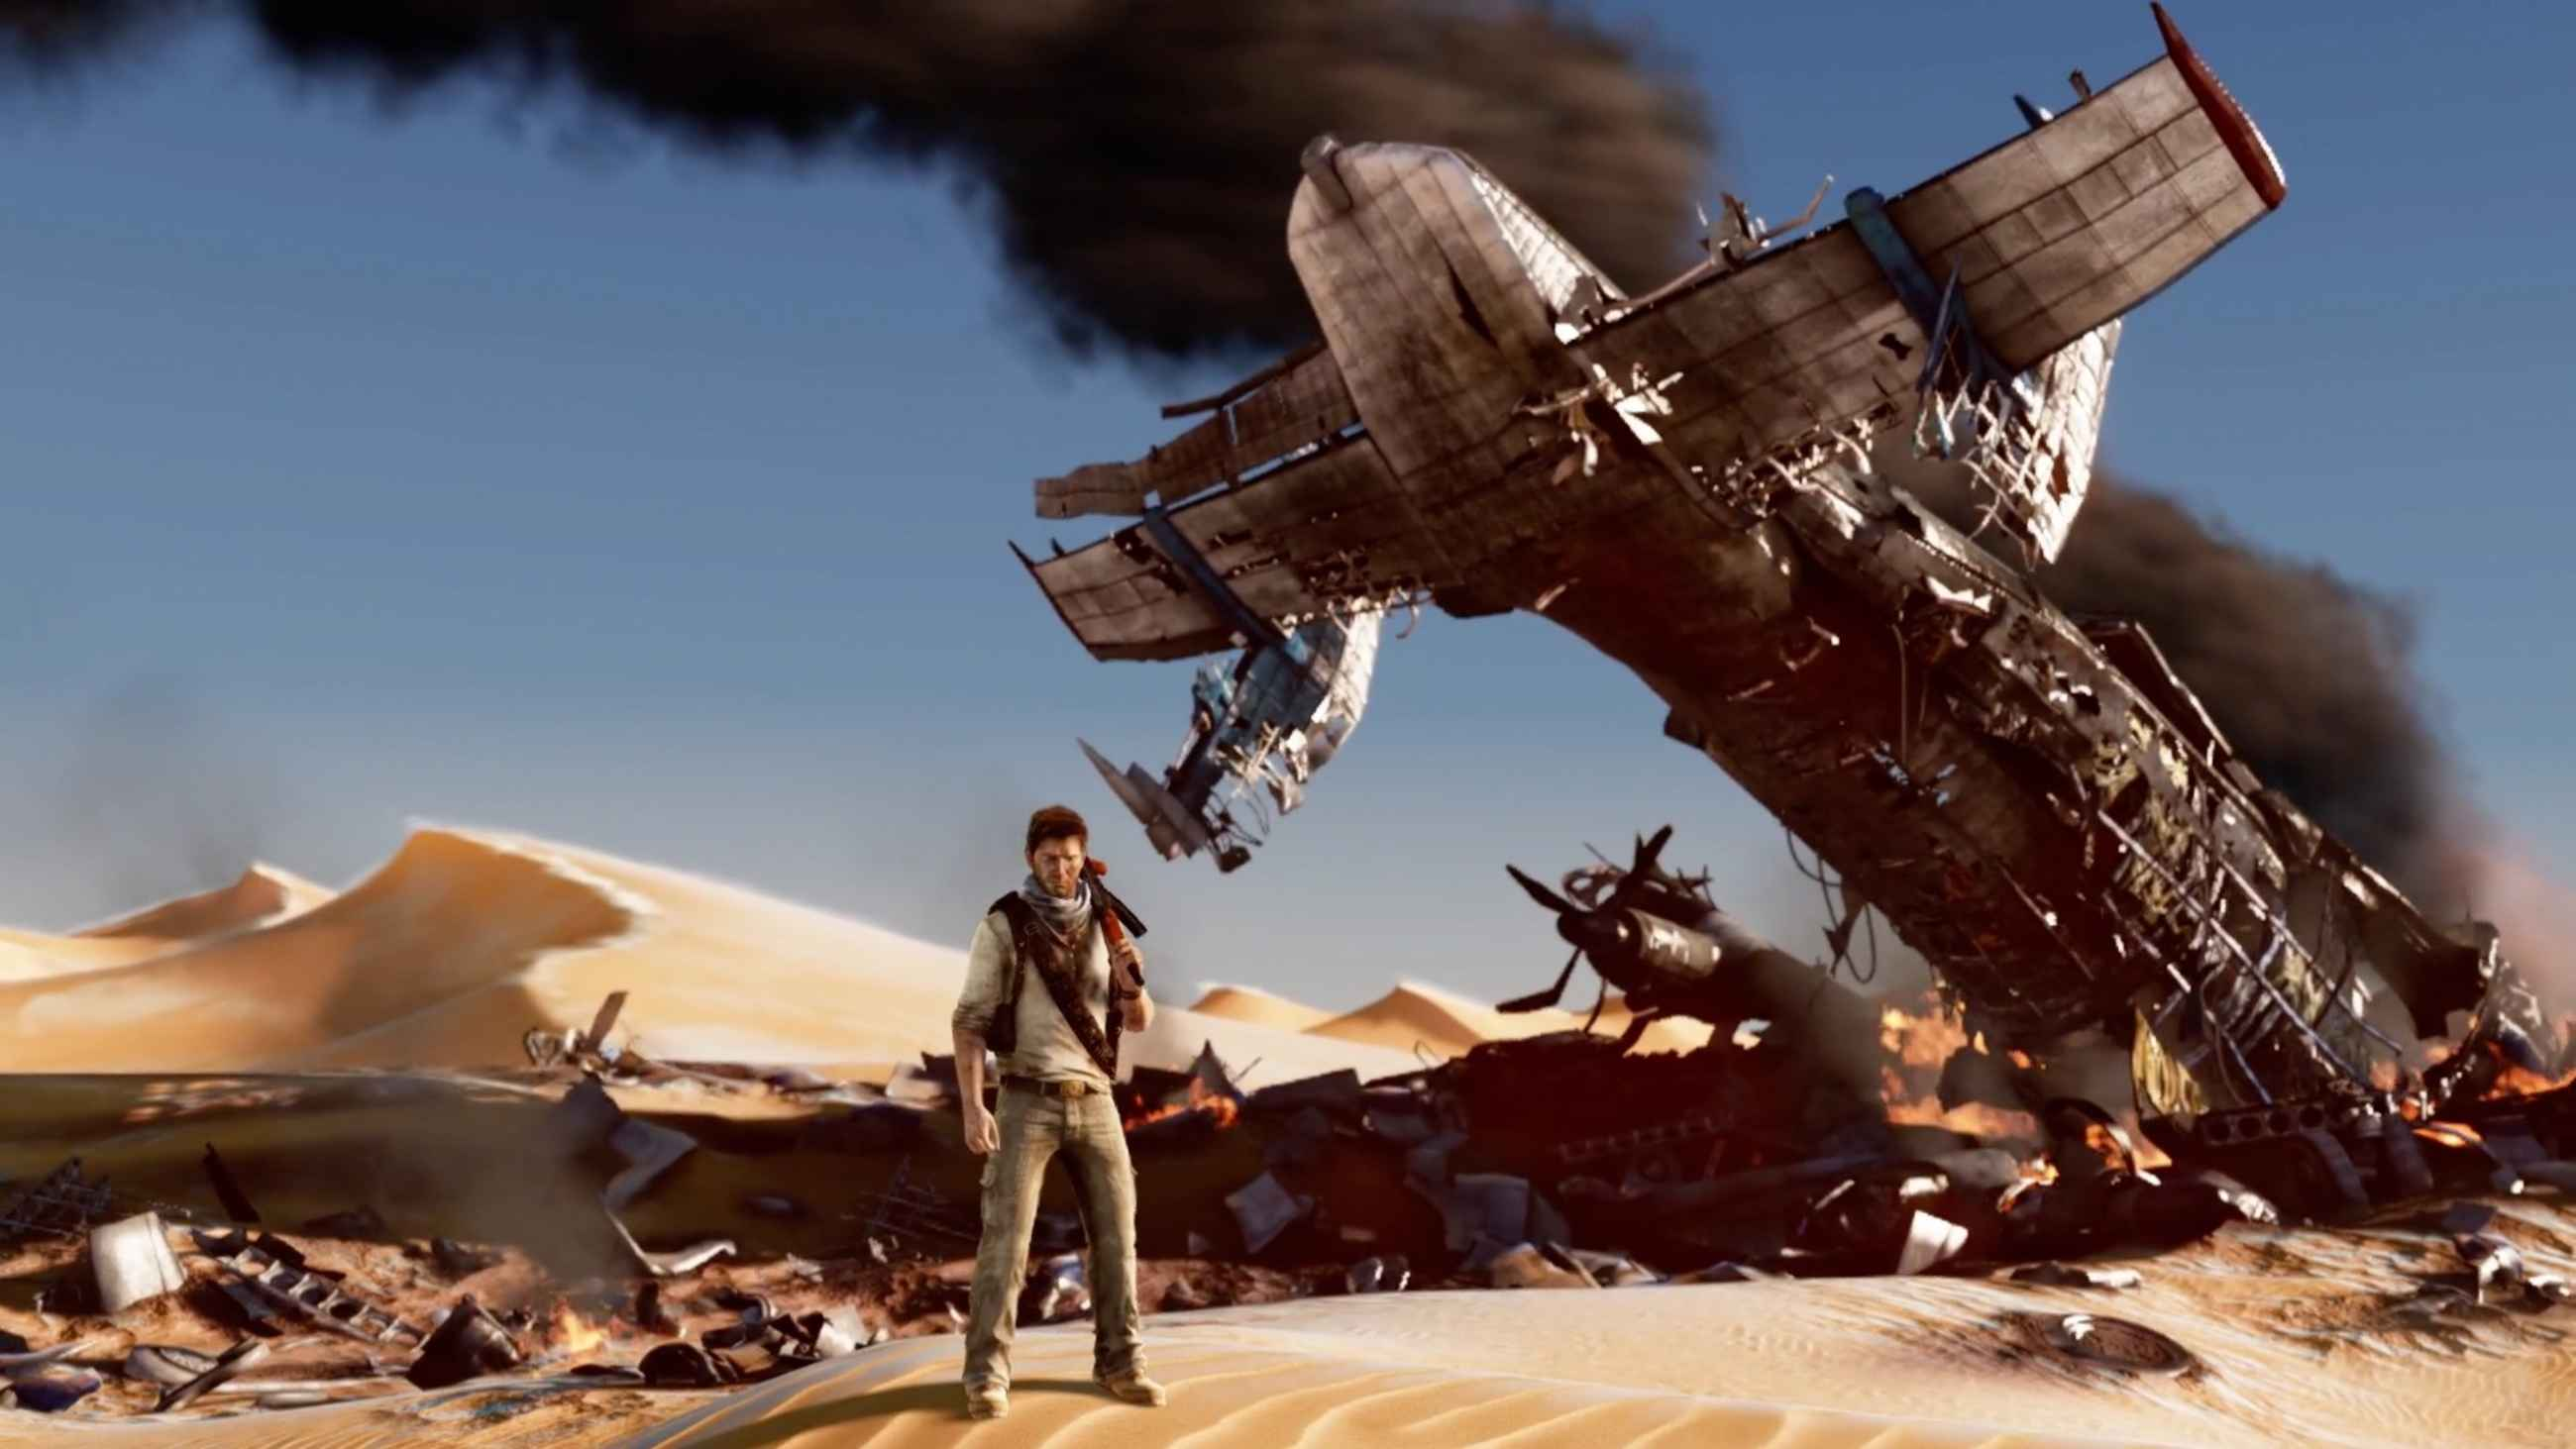 screen capture from the video game Uncharted: The Nathan Drake Collection